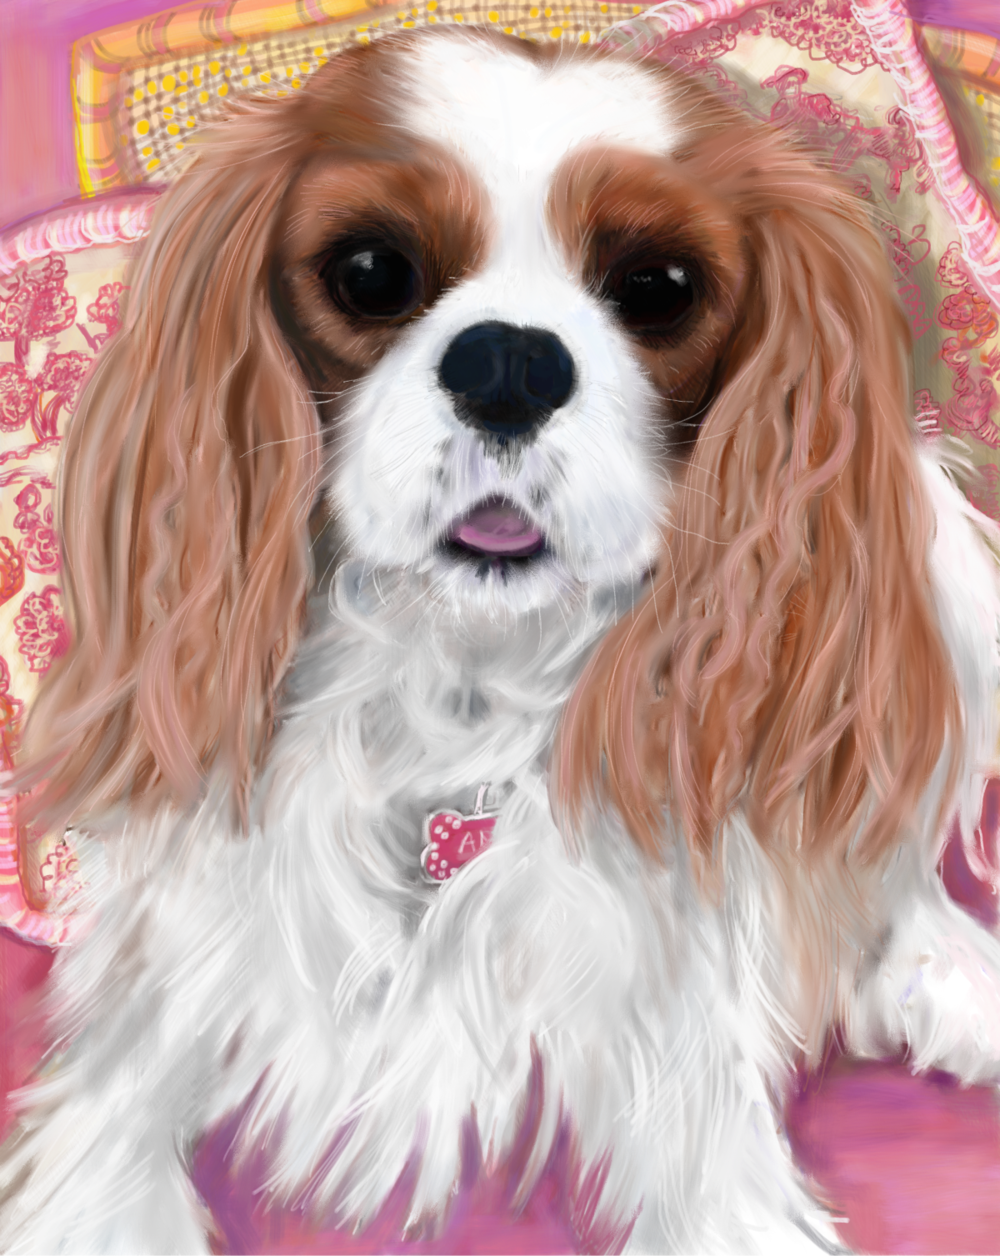 Annie, a pet portrait by Elizabeth B Martin